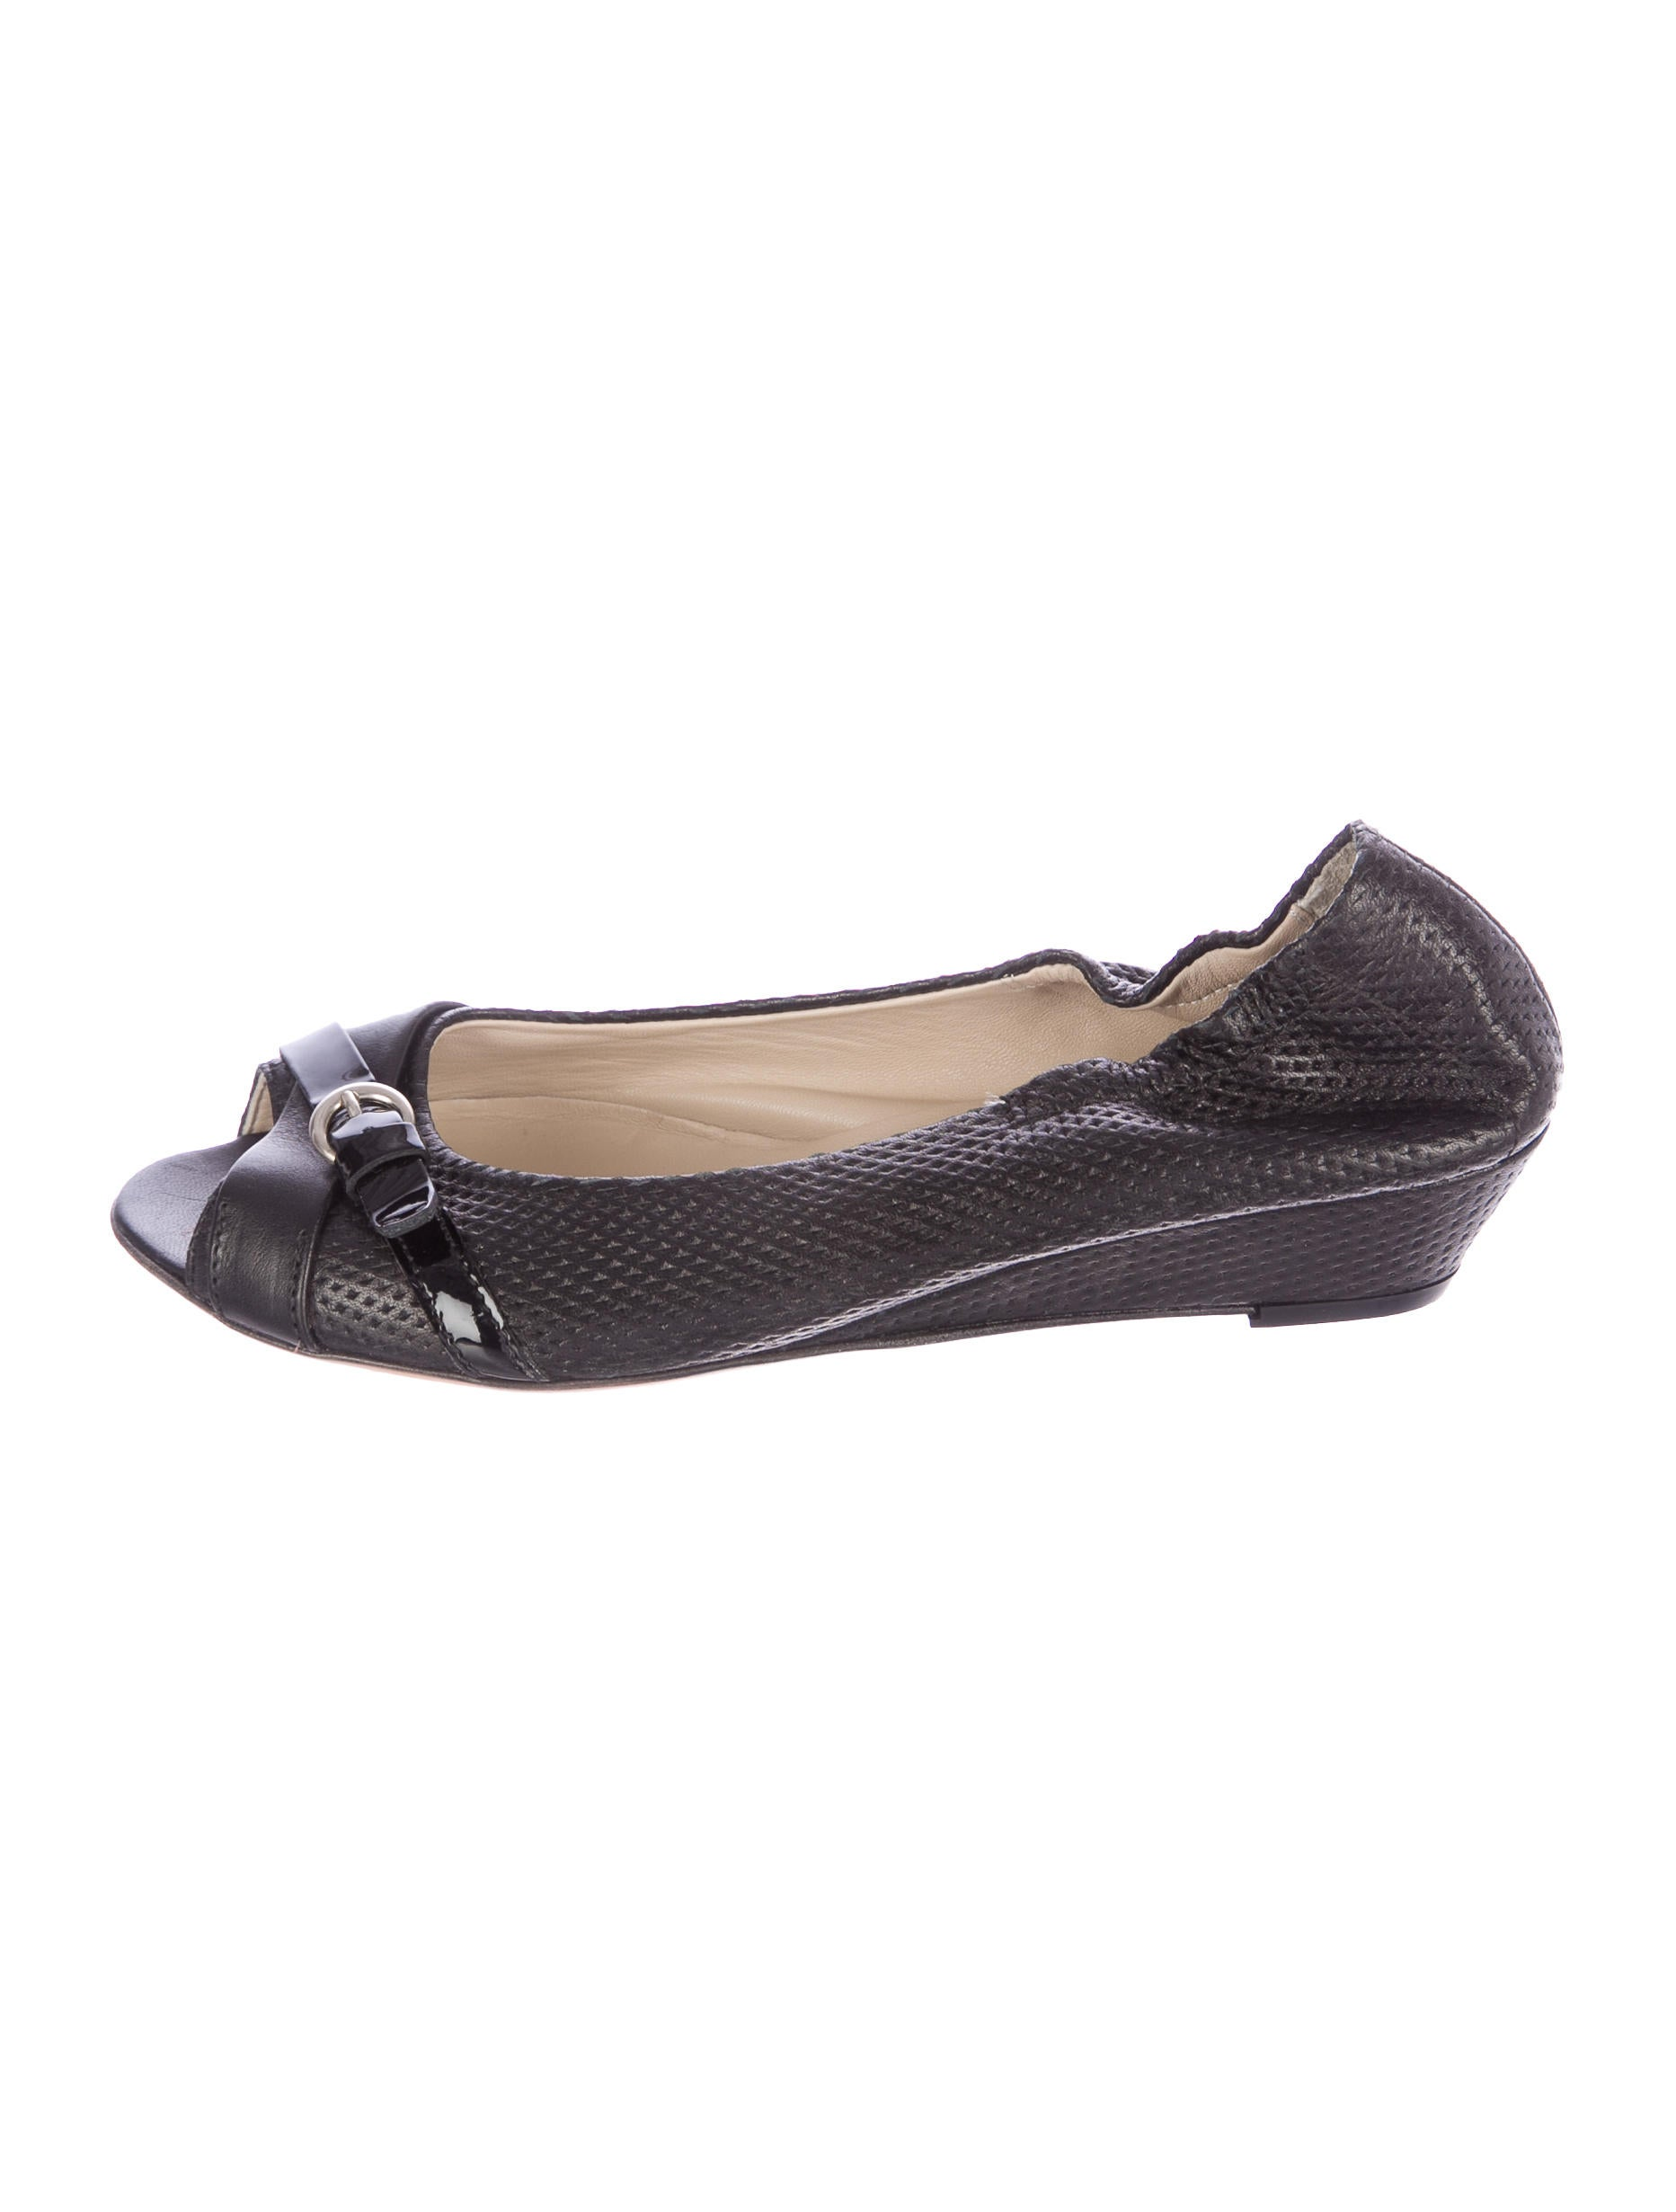 agl perforated peep toe wedges shoes wagle20063 the